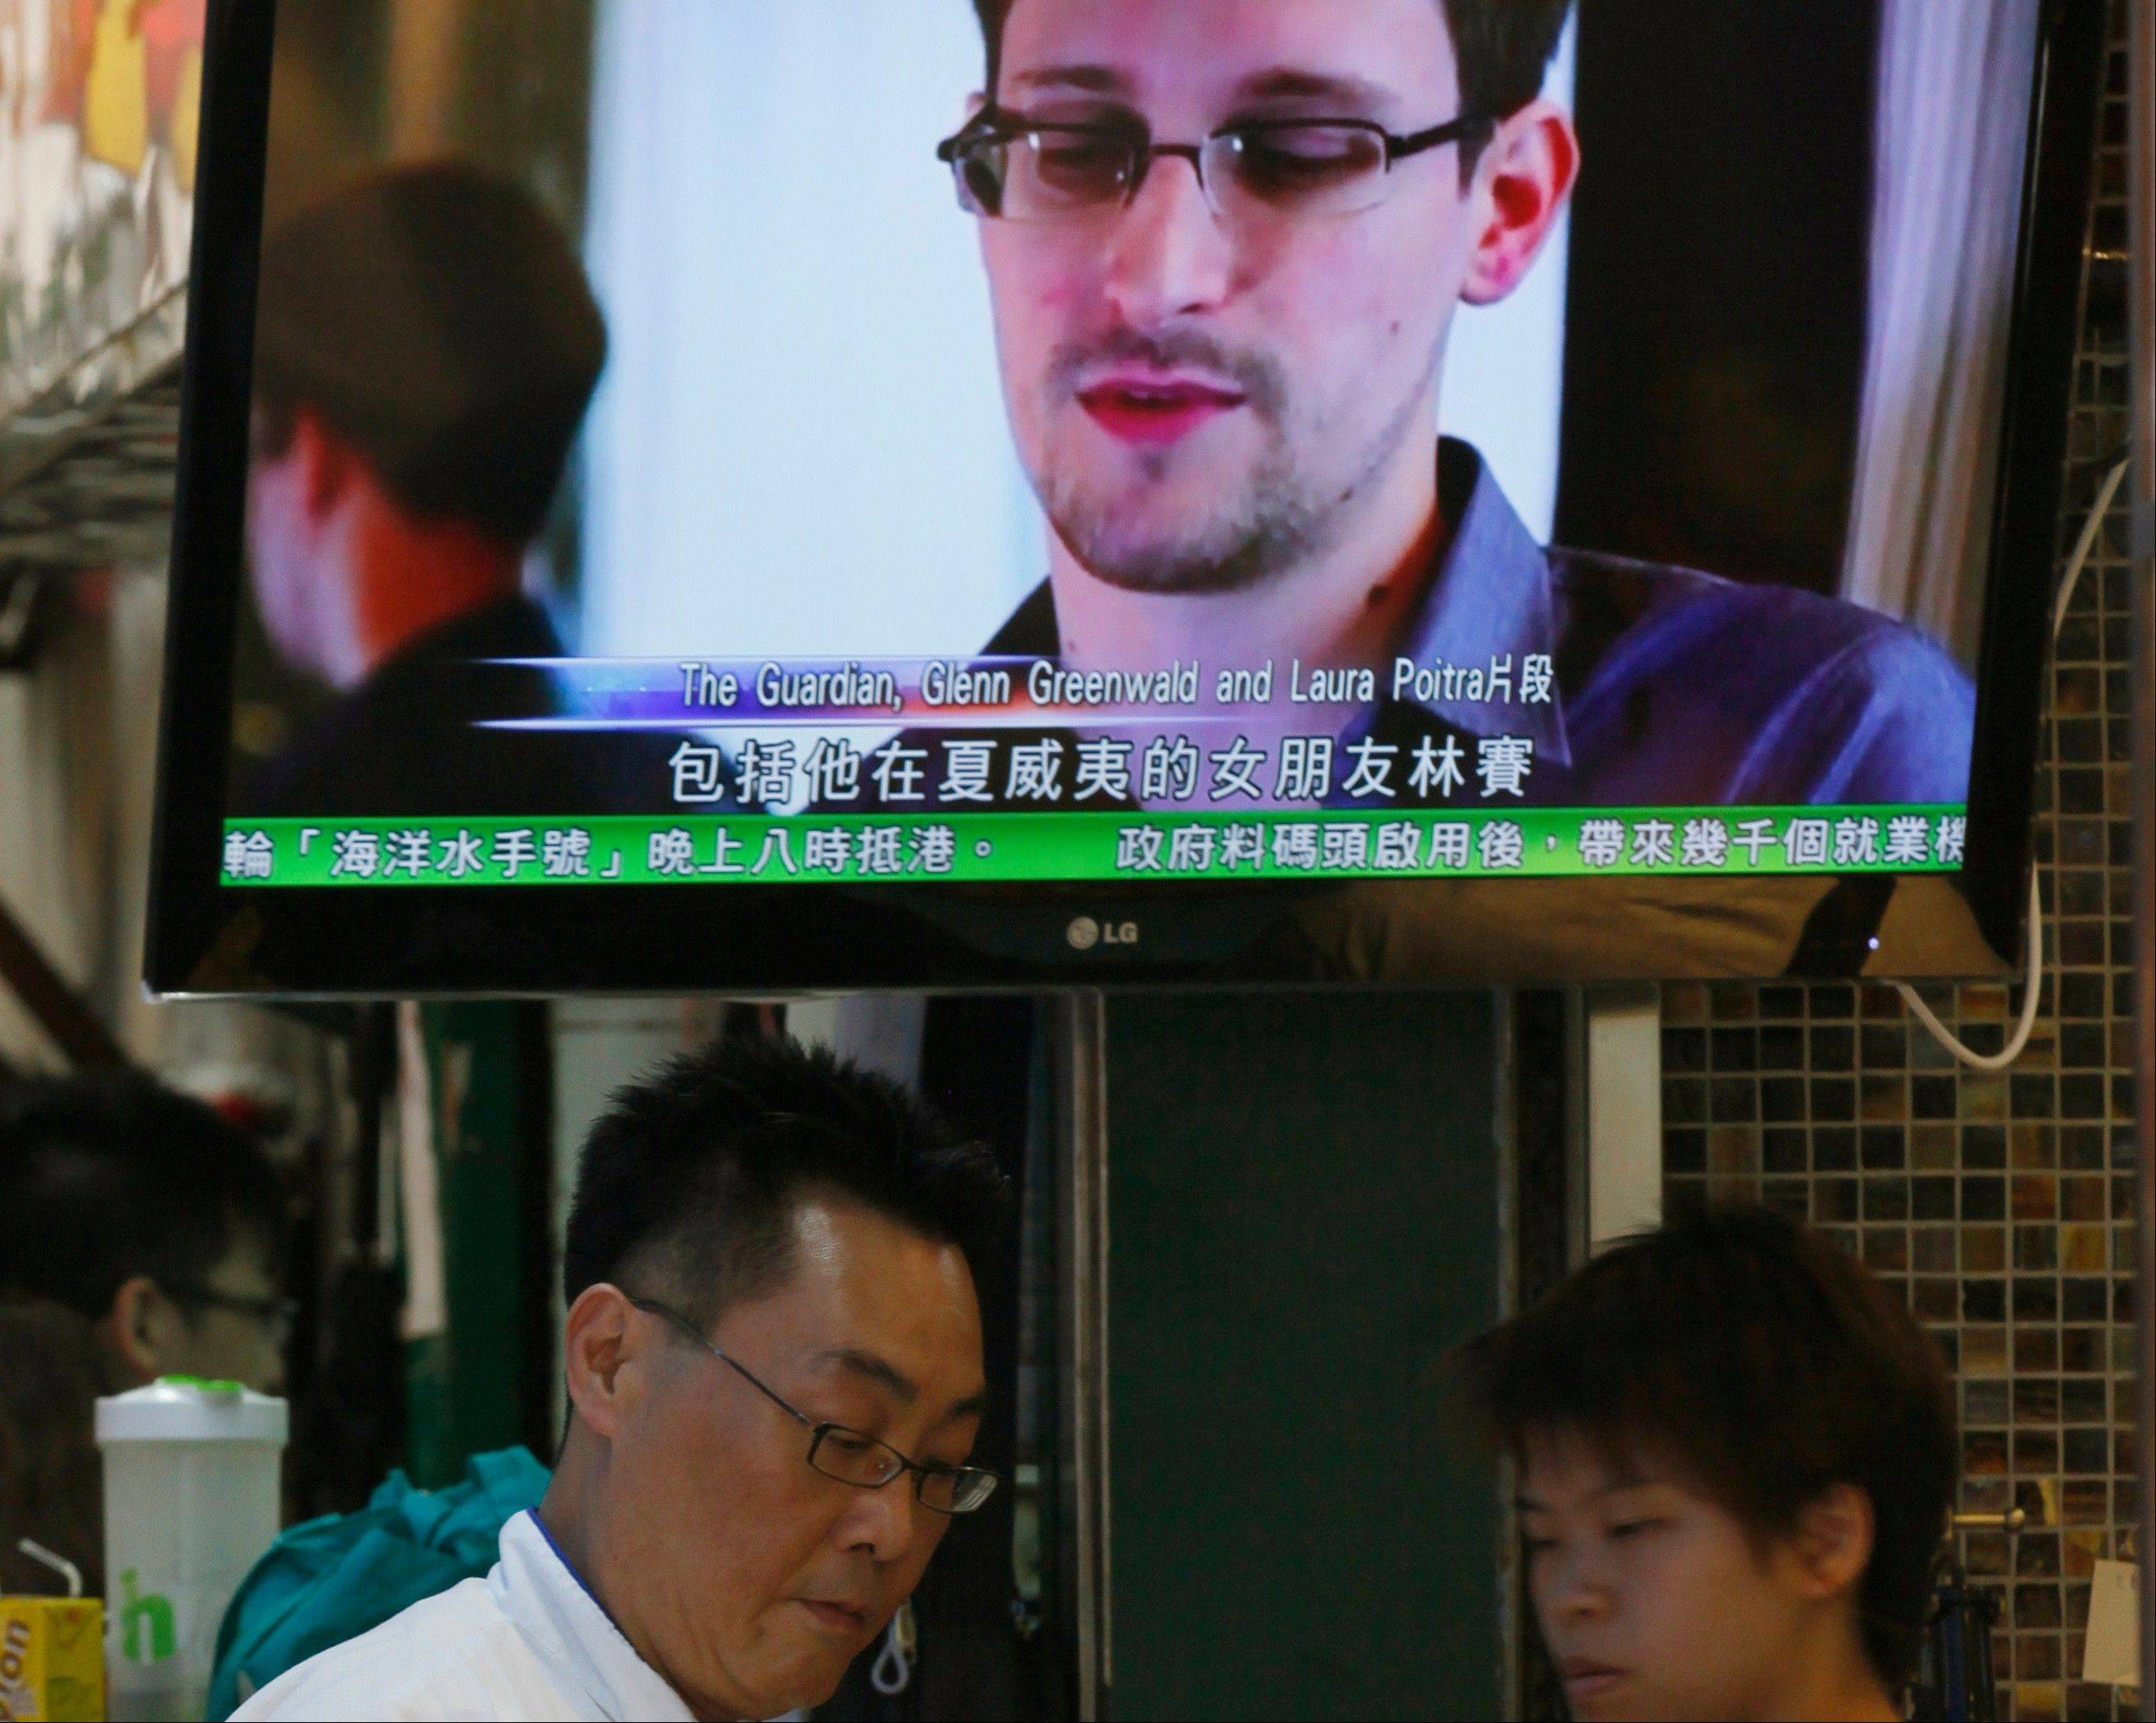 NSA leaker Snowden says he's not avoiding justice